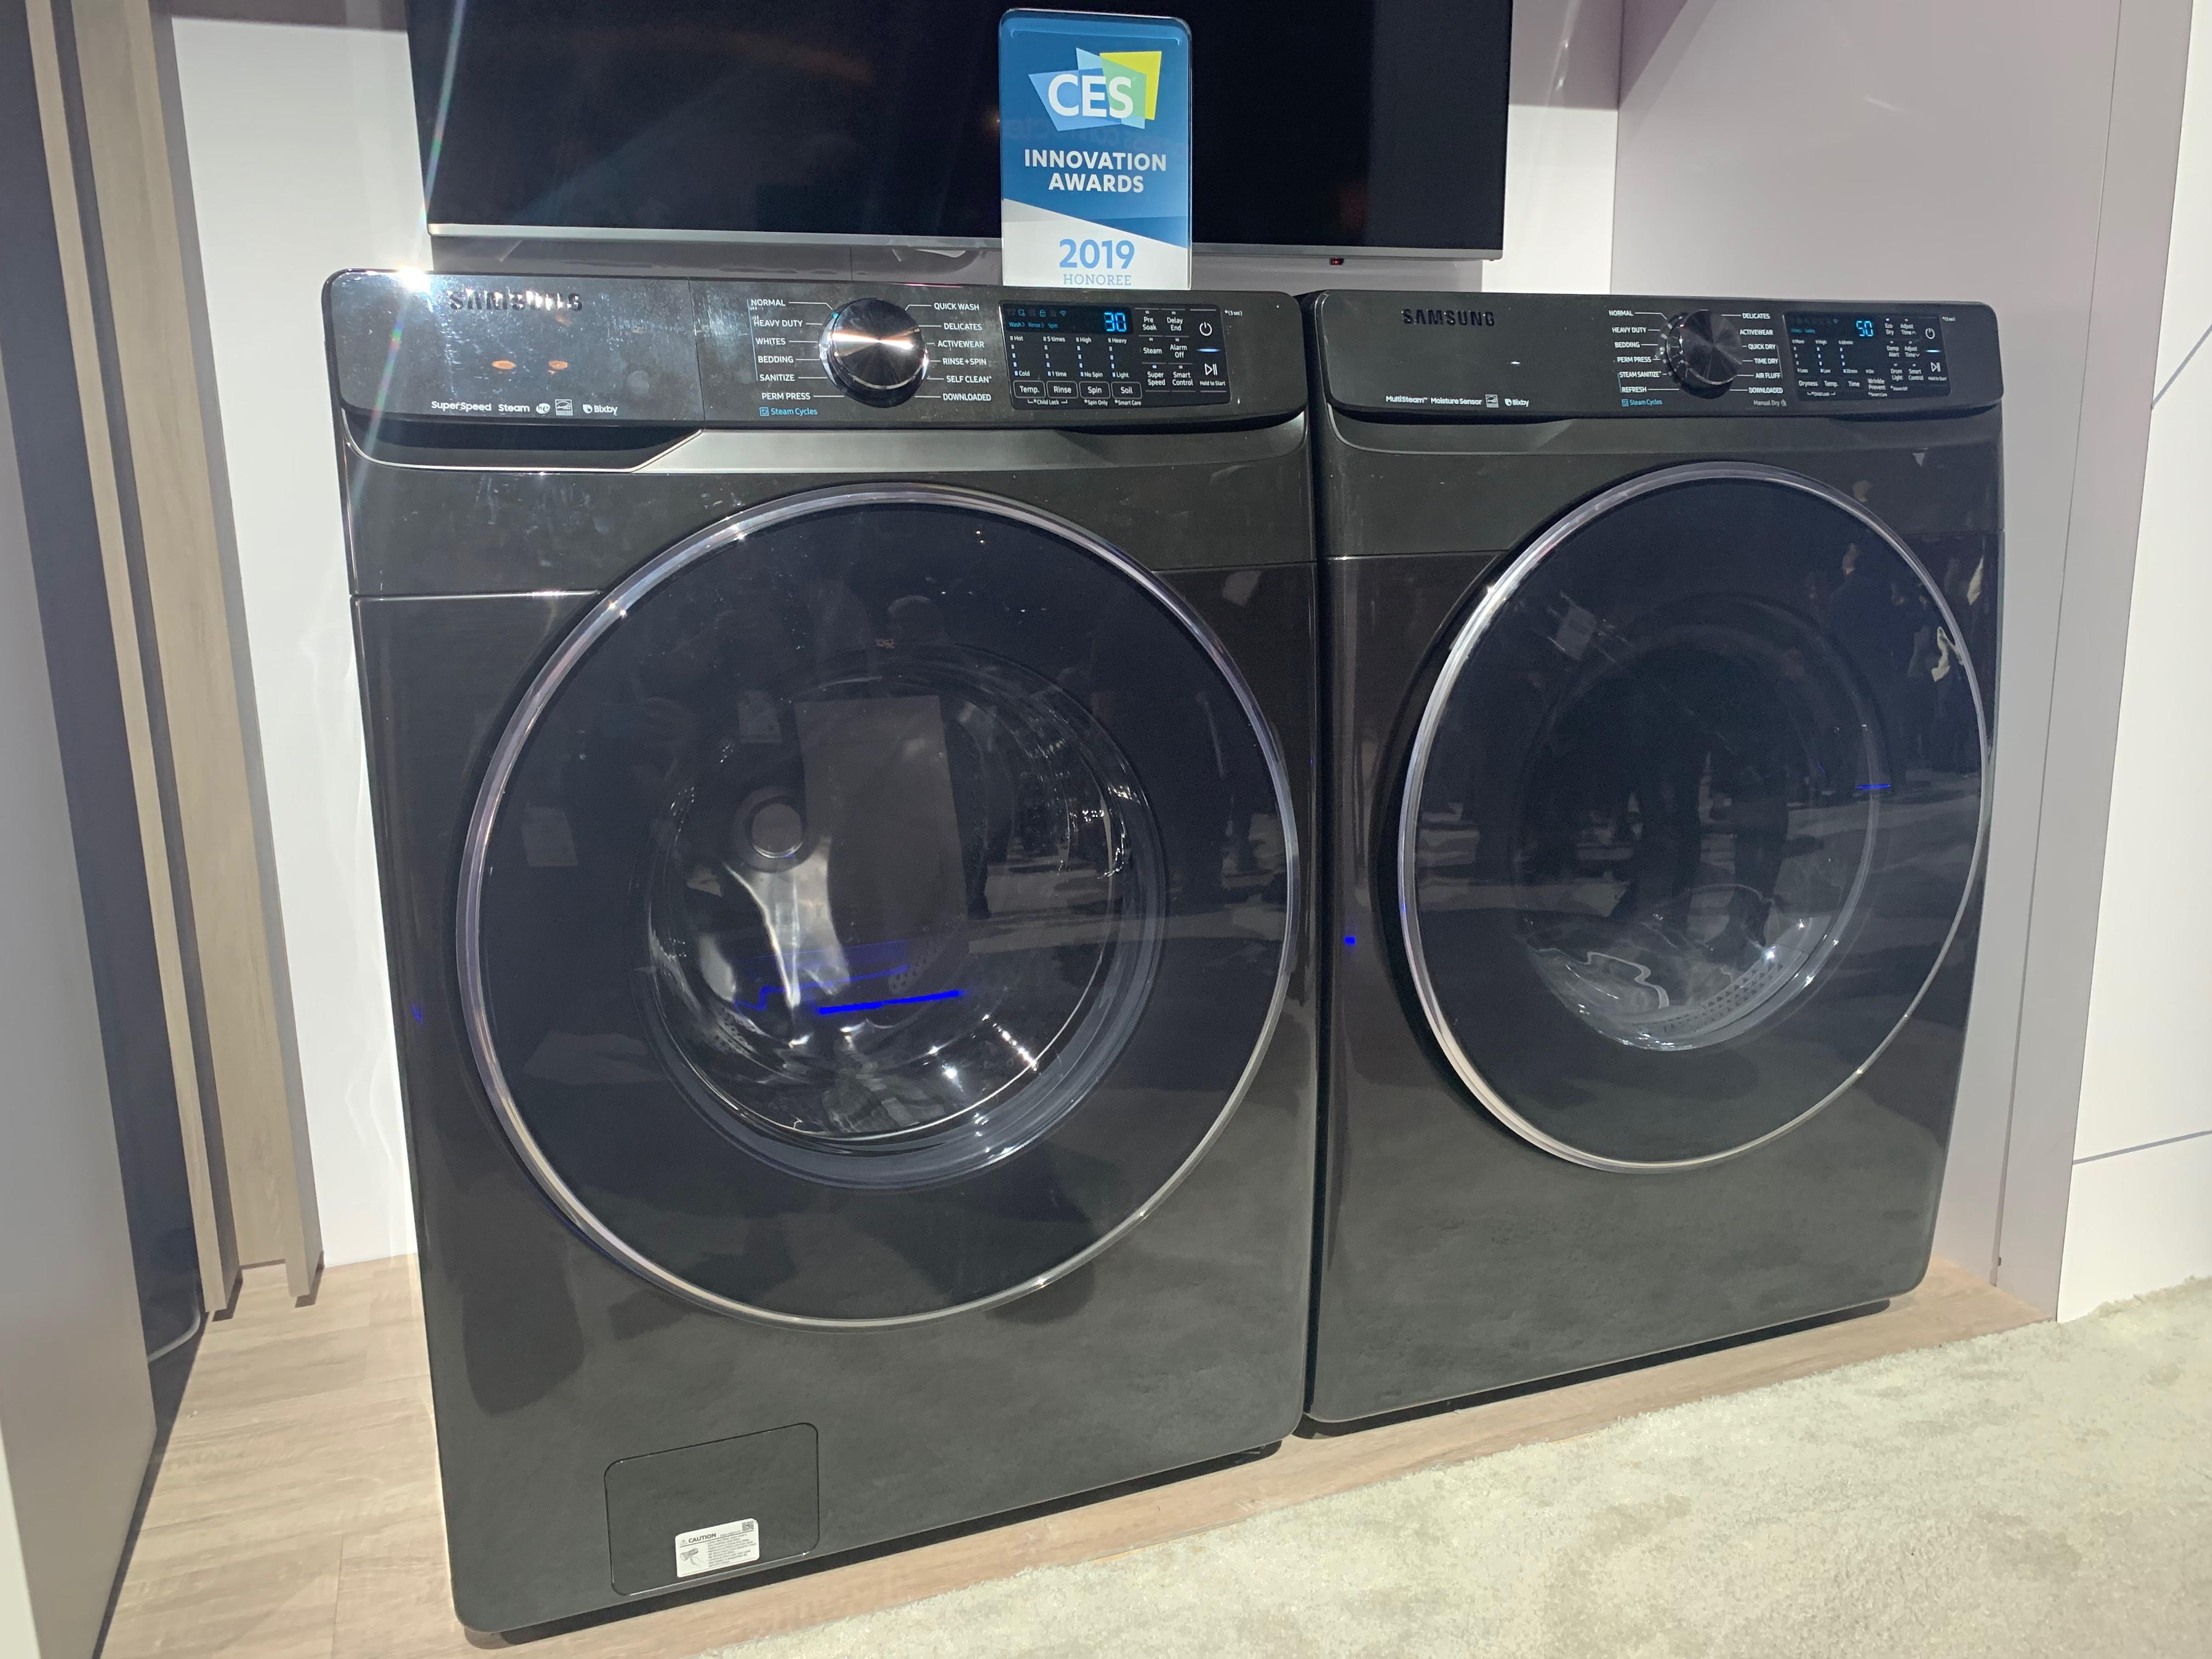 <p>Samsung's new smart washer and dryer combo, on display at CES 2019.</p>